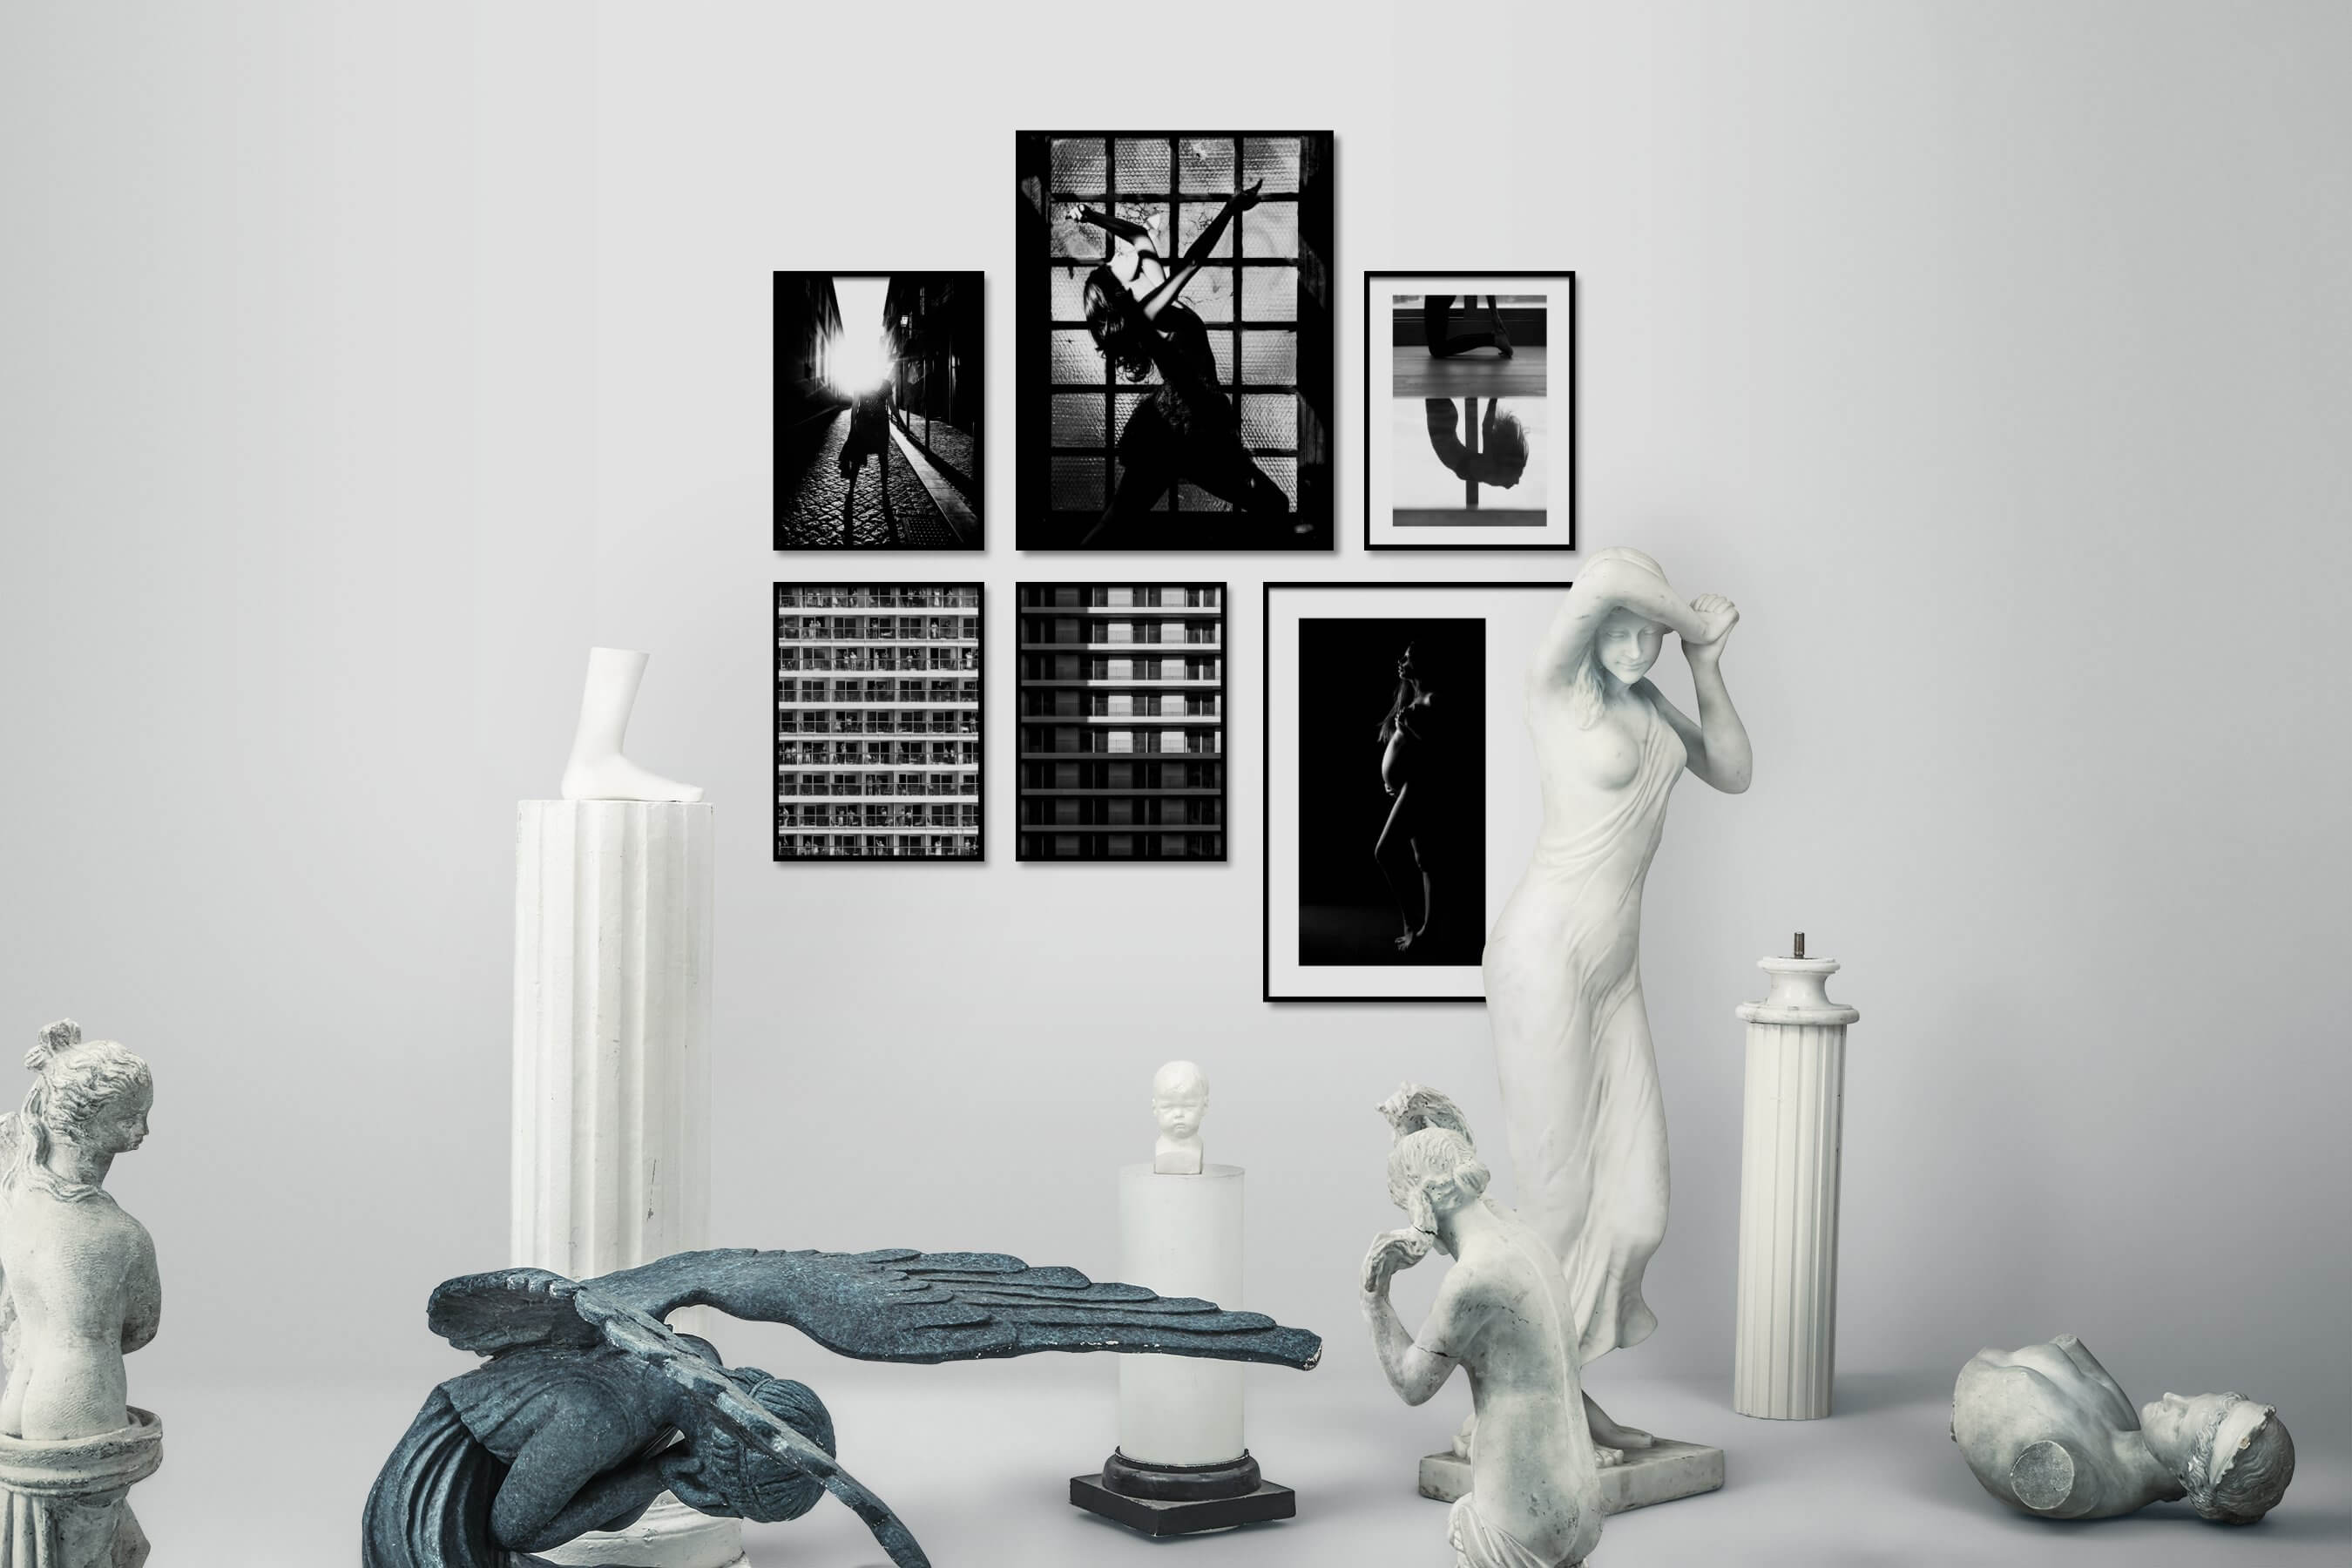 Gallery wall idea with six framed pictures arranged on a wall depicting Artsy, Black & White, City Life, Fashion & Beauty, For the Maximalist, For the Moderate, For the Minimalist, and Mindfulness